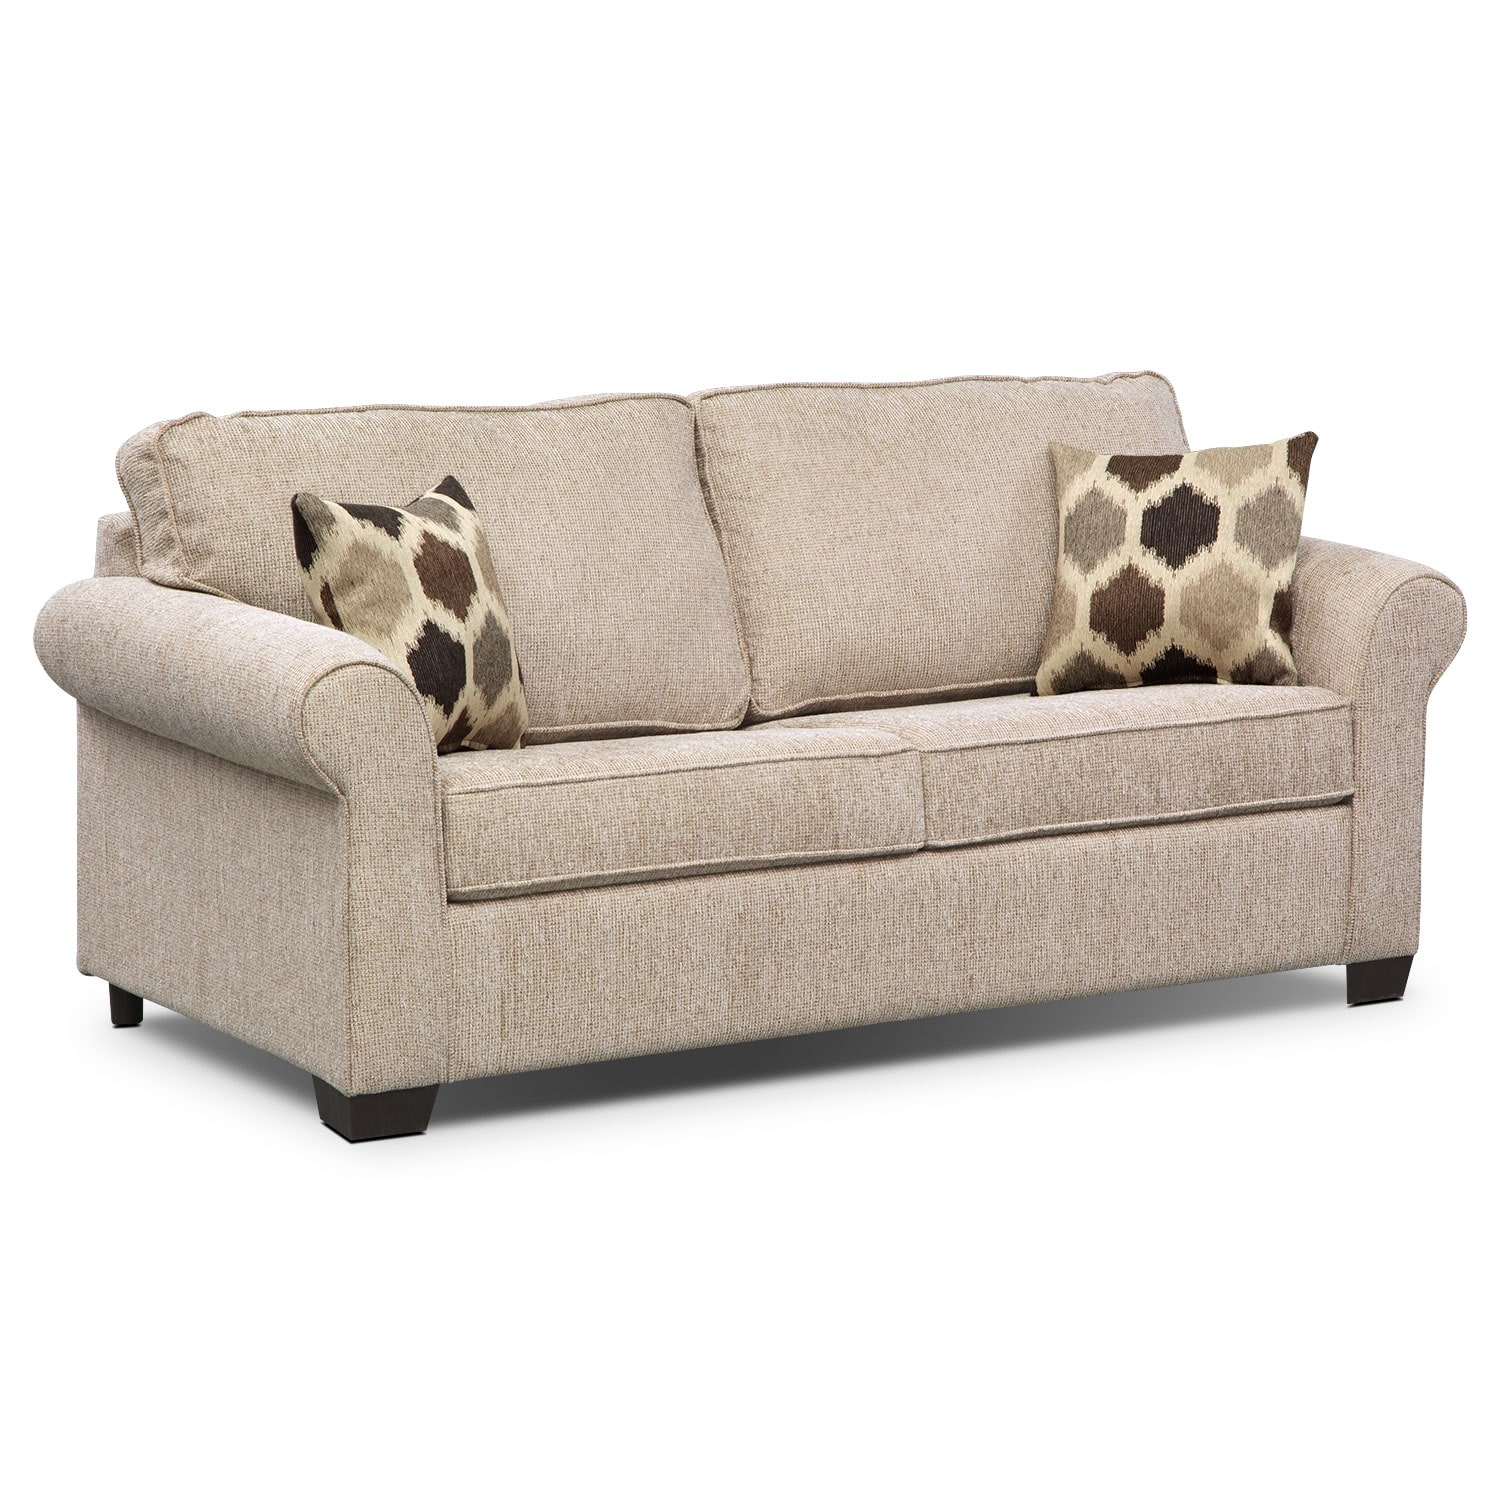 Fletcher Full Innerspring Sleeper Sofa Beige Value City Furniture